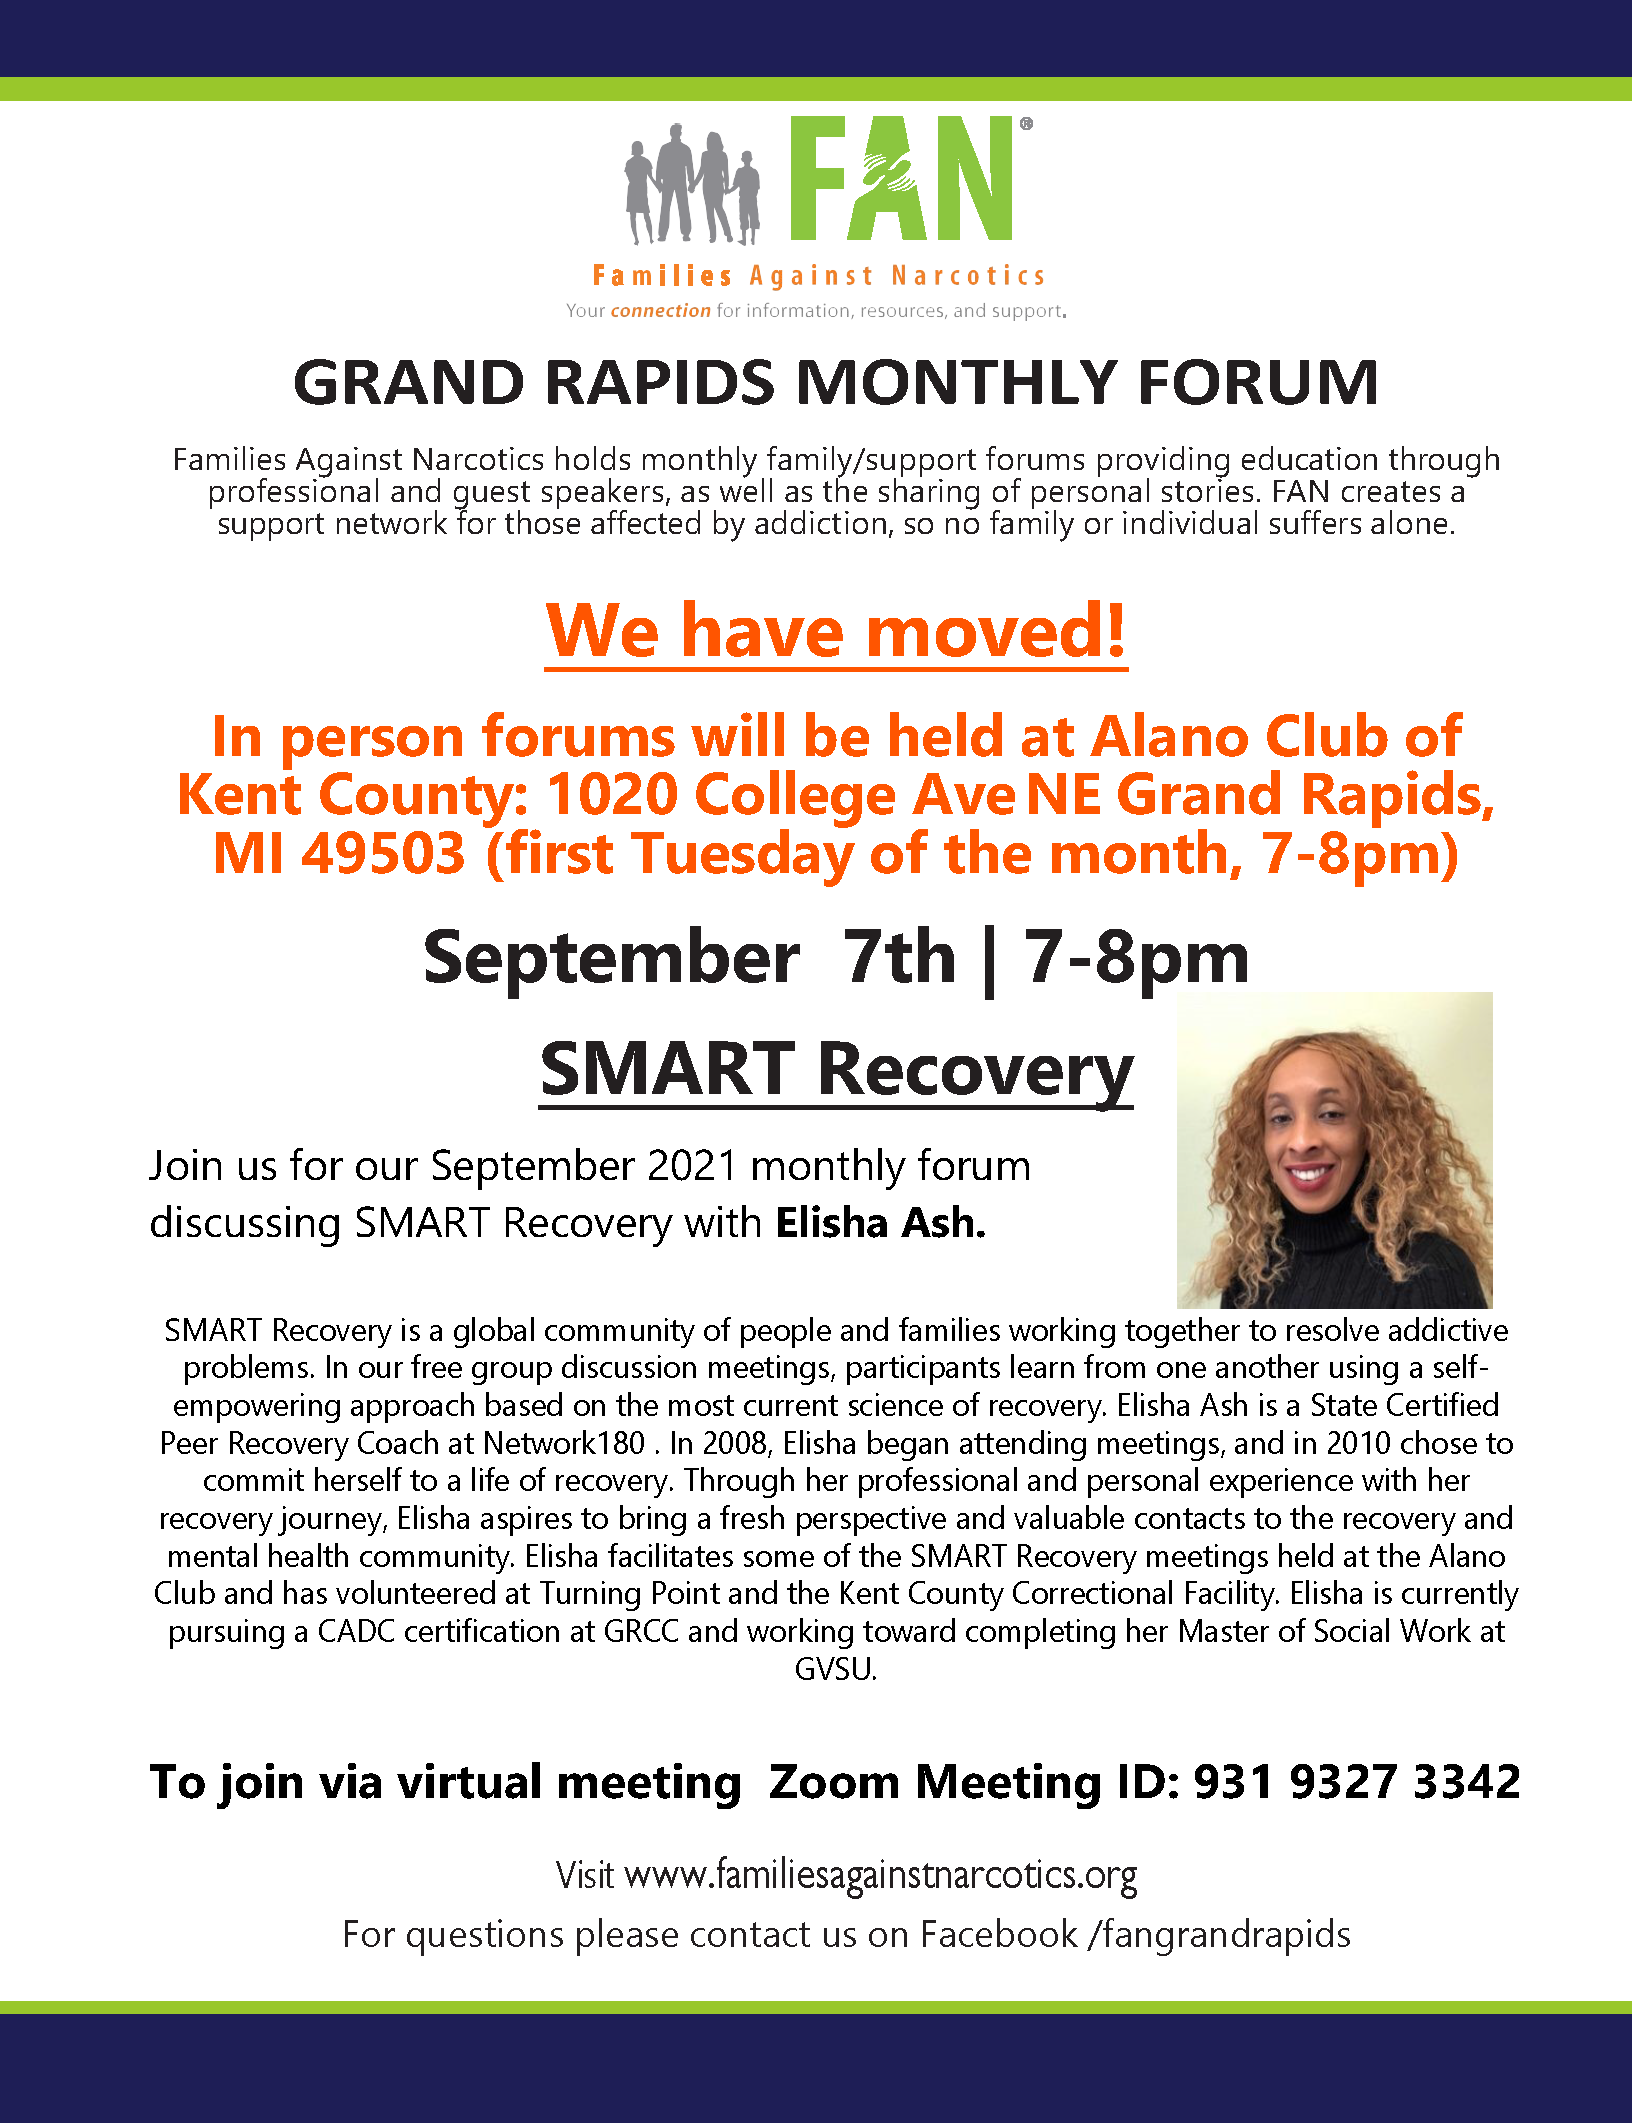 Grand Rapids Families Against Narcotics (FAN) Meeting 09/07/2021